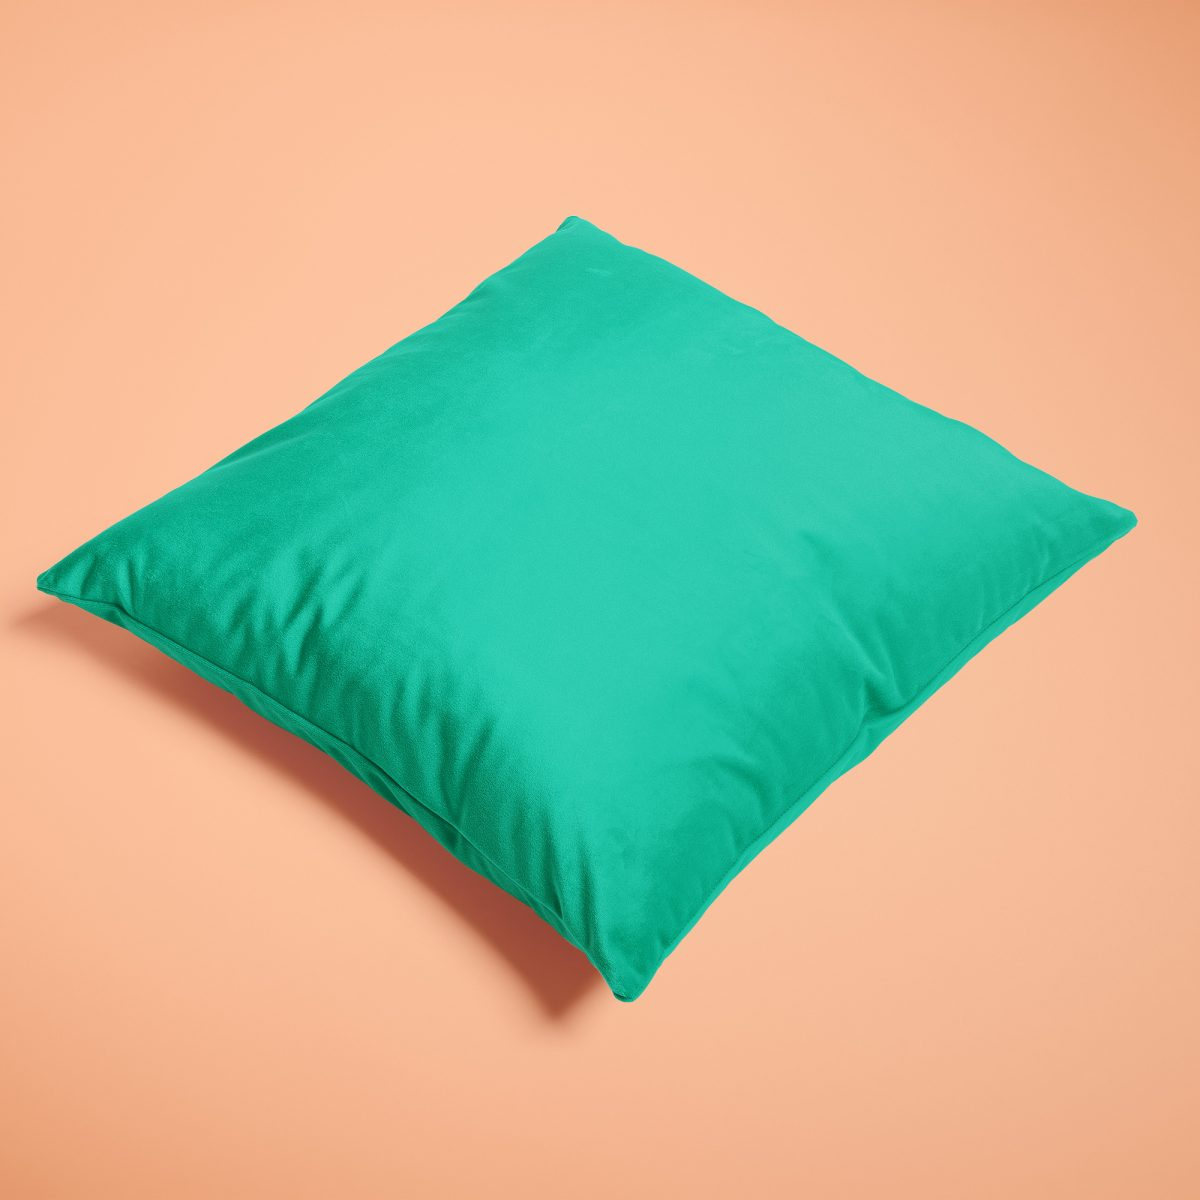 teal-covers-of-the-rainbow-2